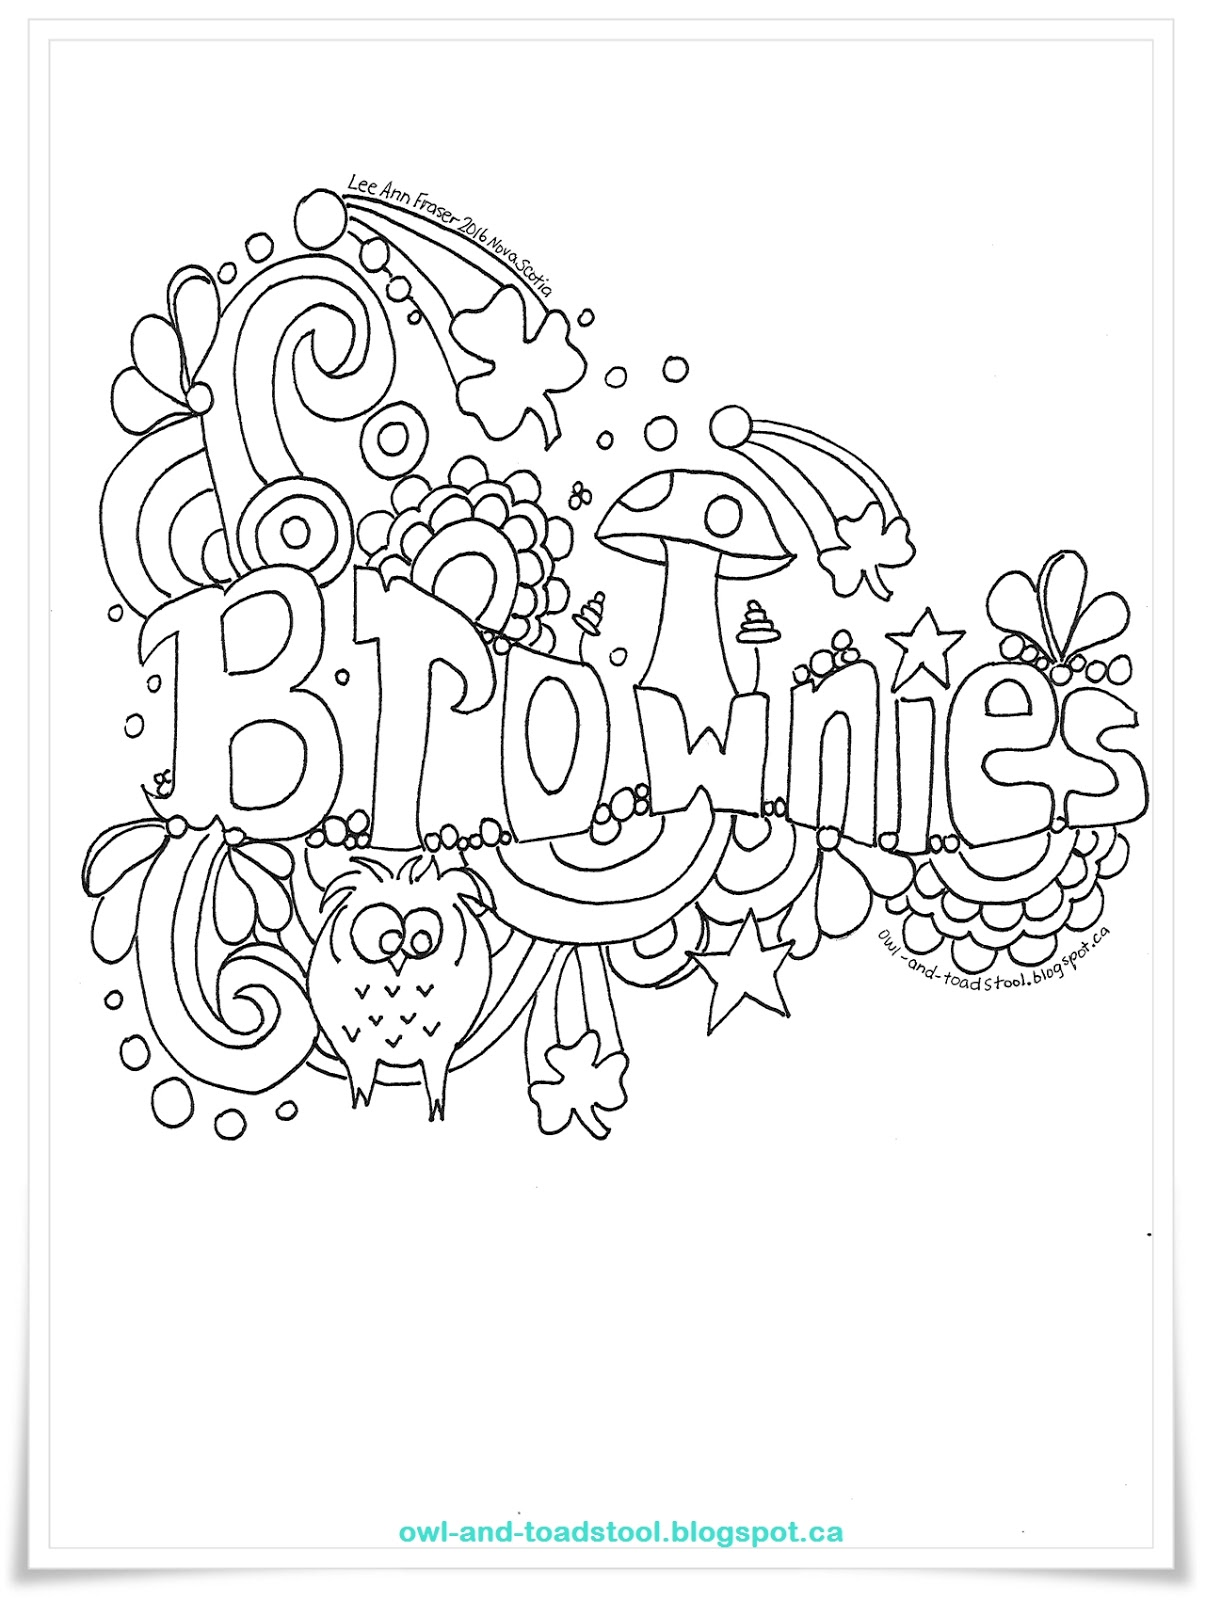 Doodle+Brownies+blog further girl scout promise coloring pages 1 on girl scout promise coloring pages moreover girl scout promise coloring pages 2 on girl scout promise coloring pages furthermore girl scout promise and law printables on girl scout promise coloring pages moreover girl scout promise coloring pages 4 on girl scout promise coloring pages